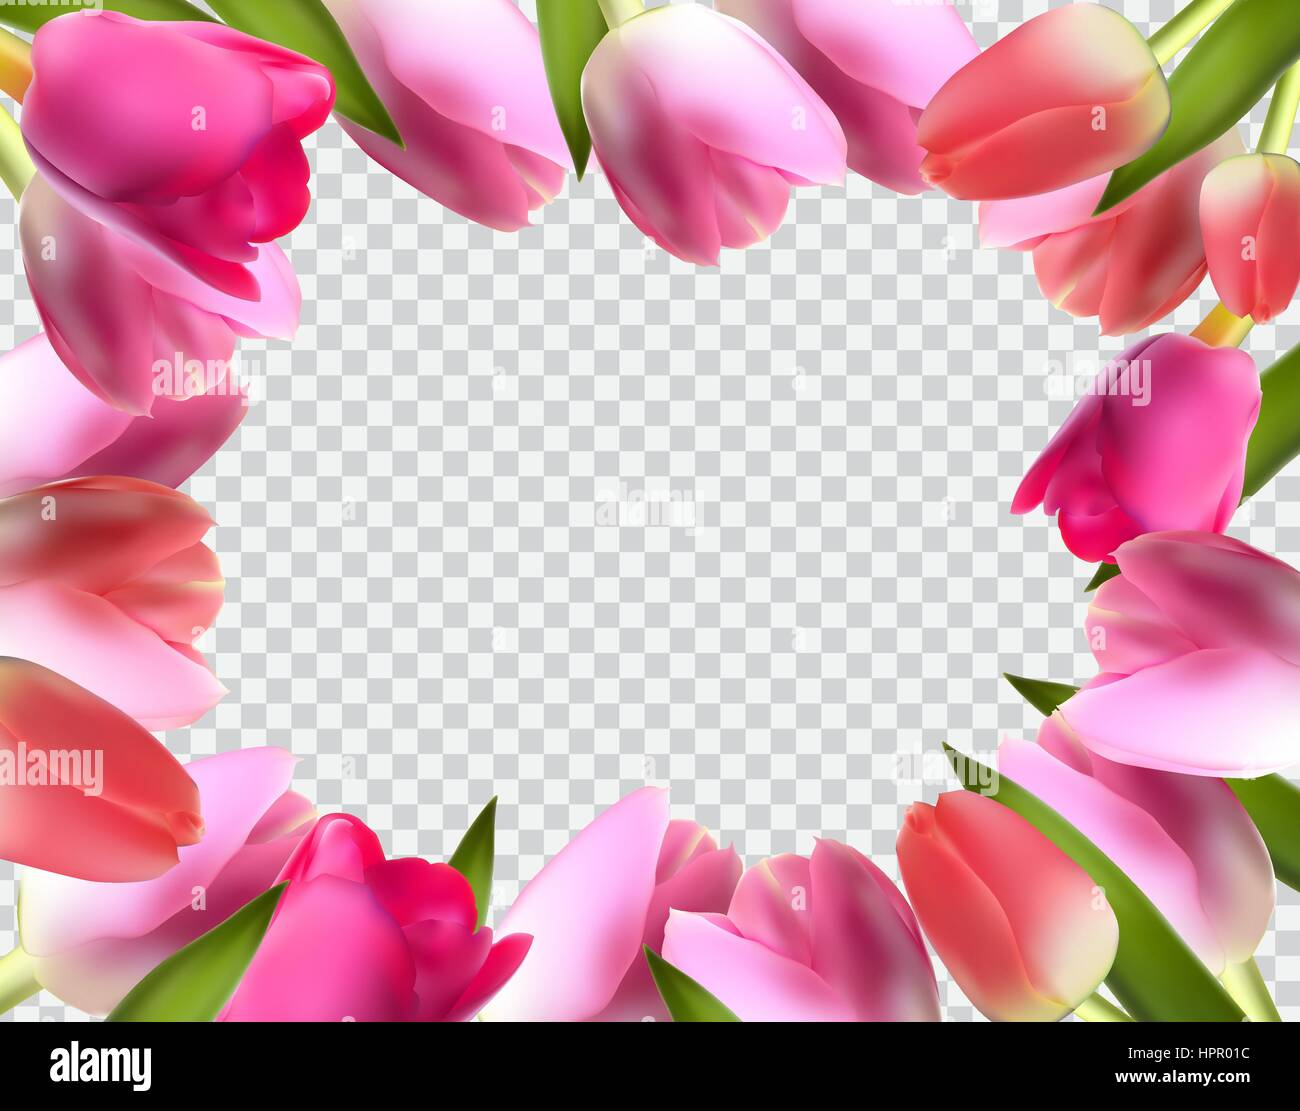 Beautiful Pink Realistic Tulip Frame Vector Illustration - Stock Vector